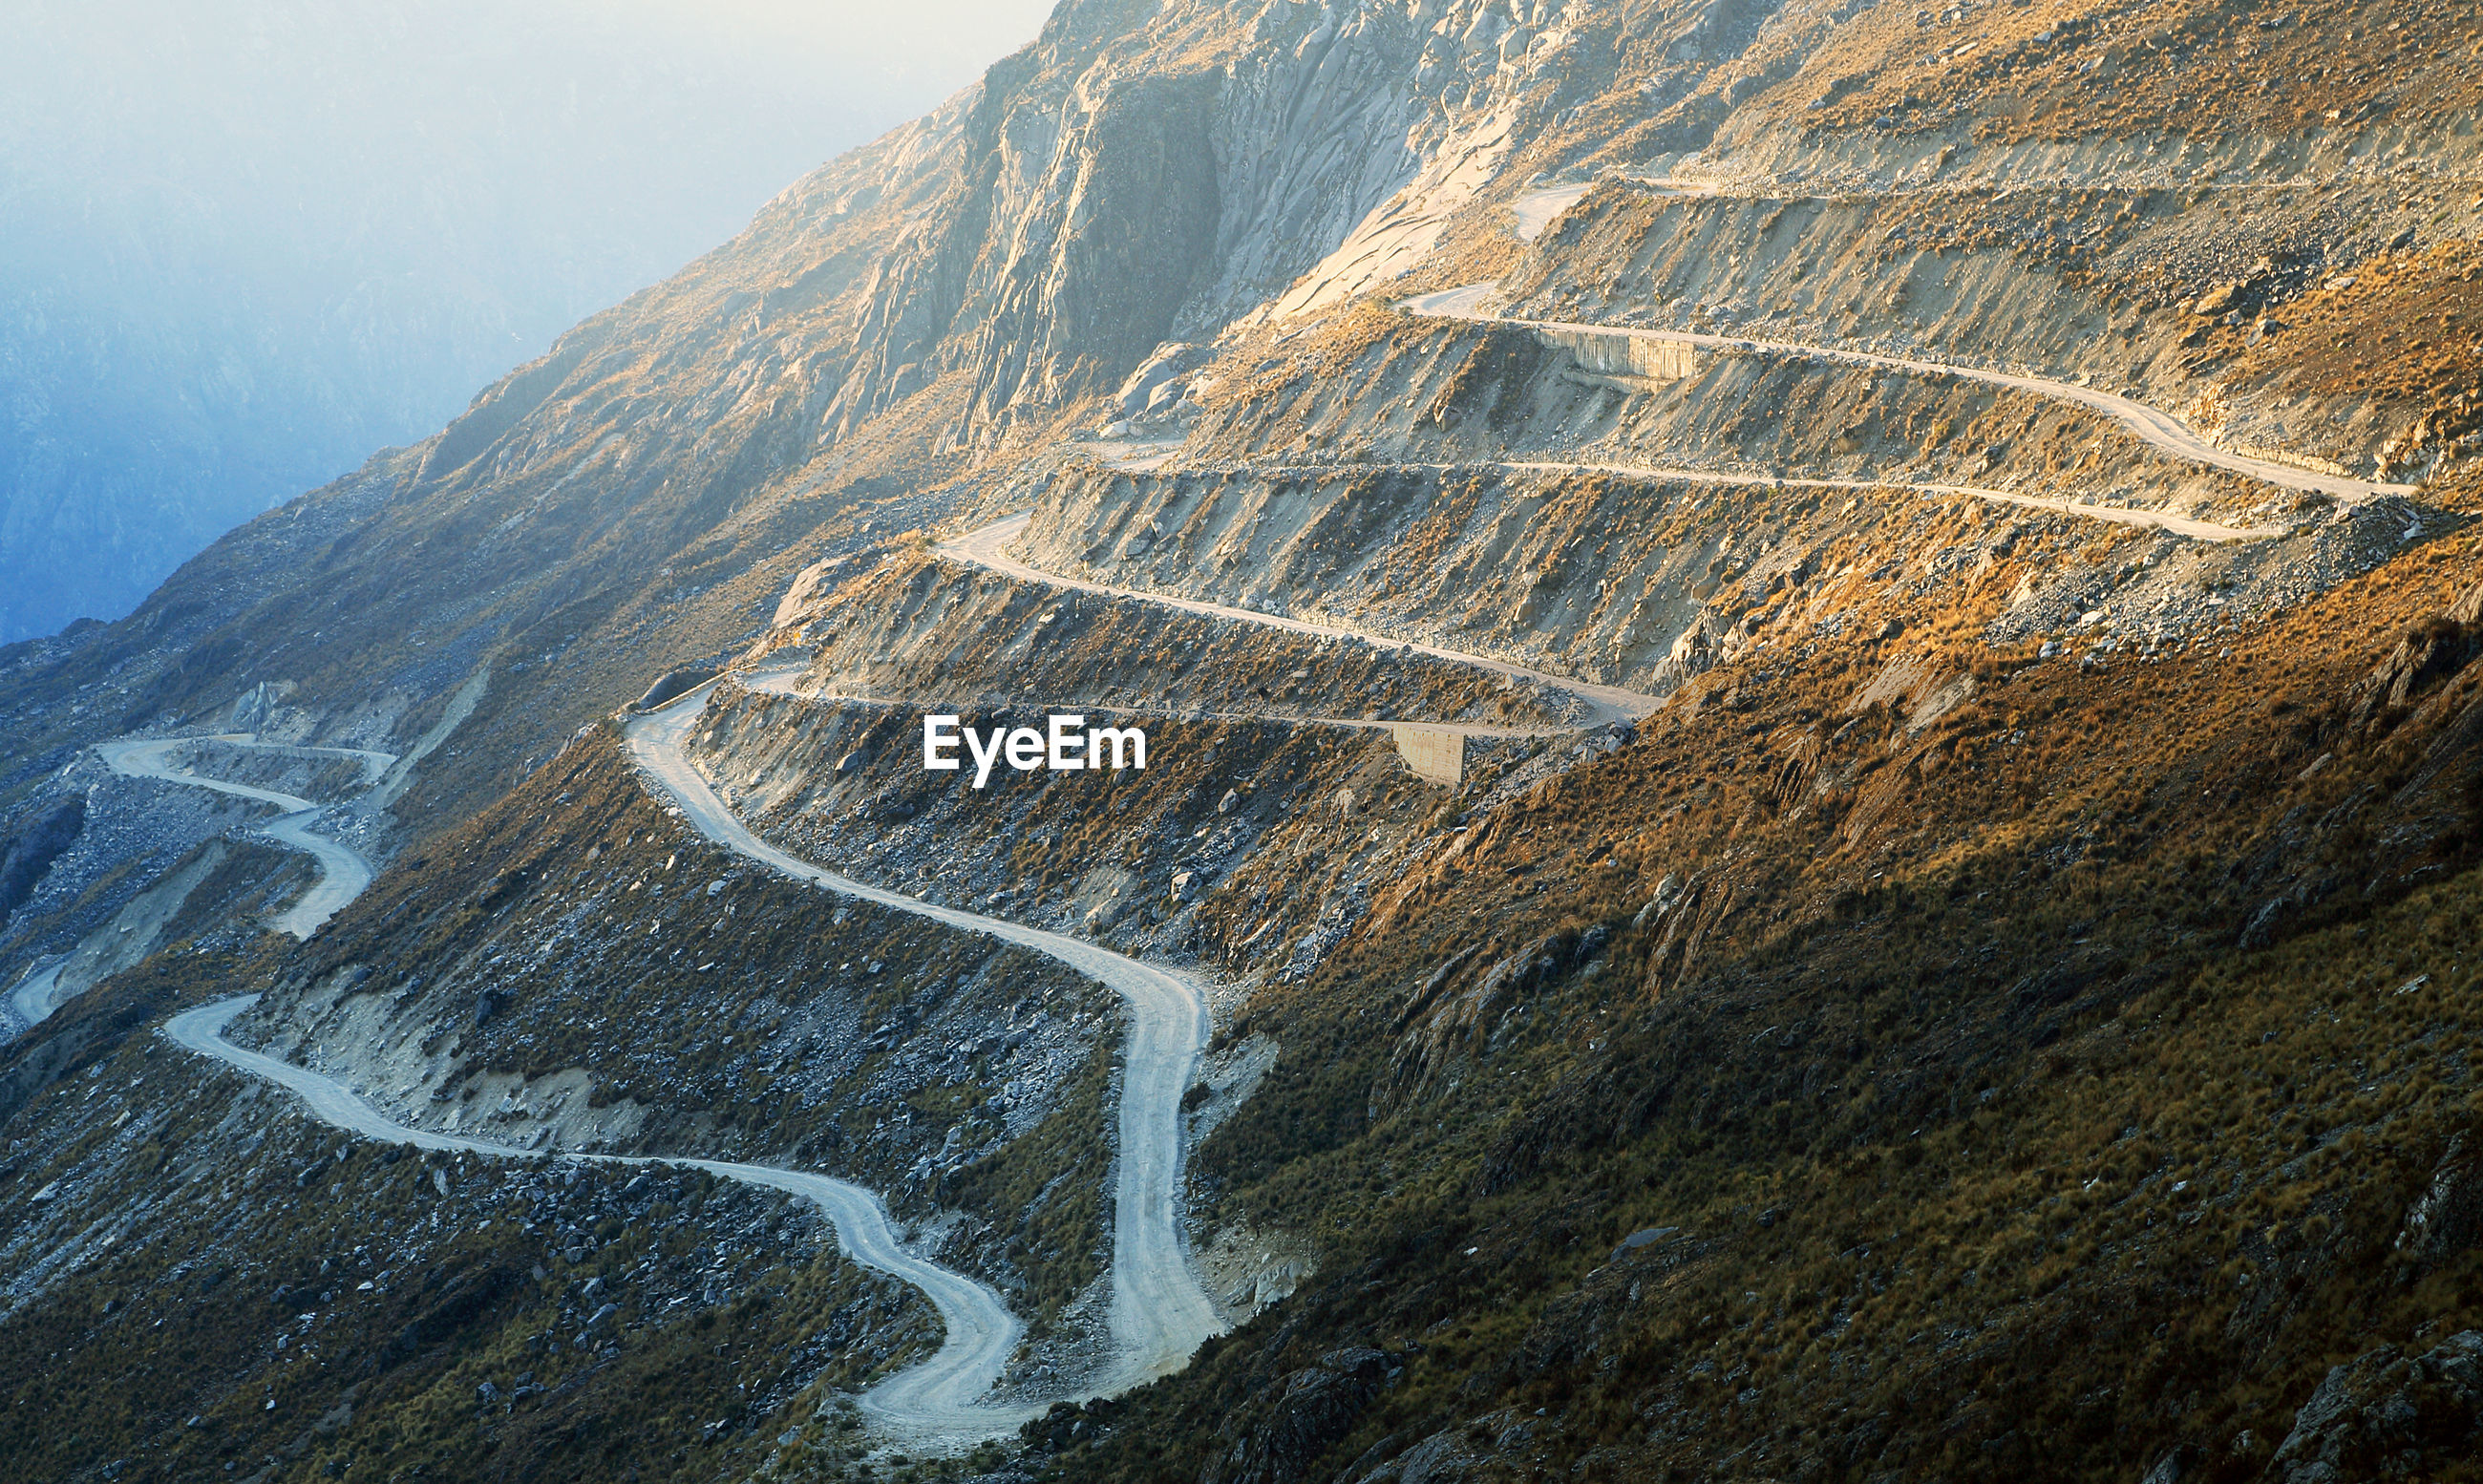 Zigzag road over rocky mountain